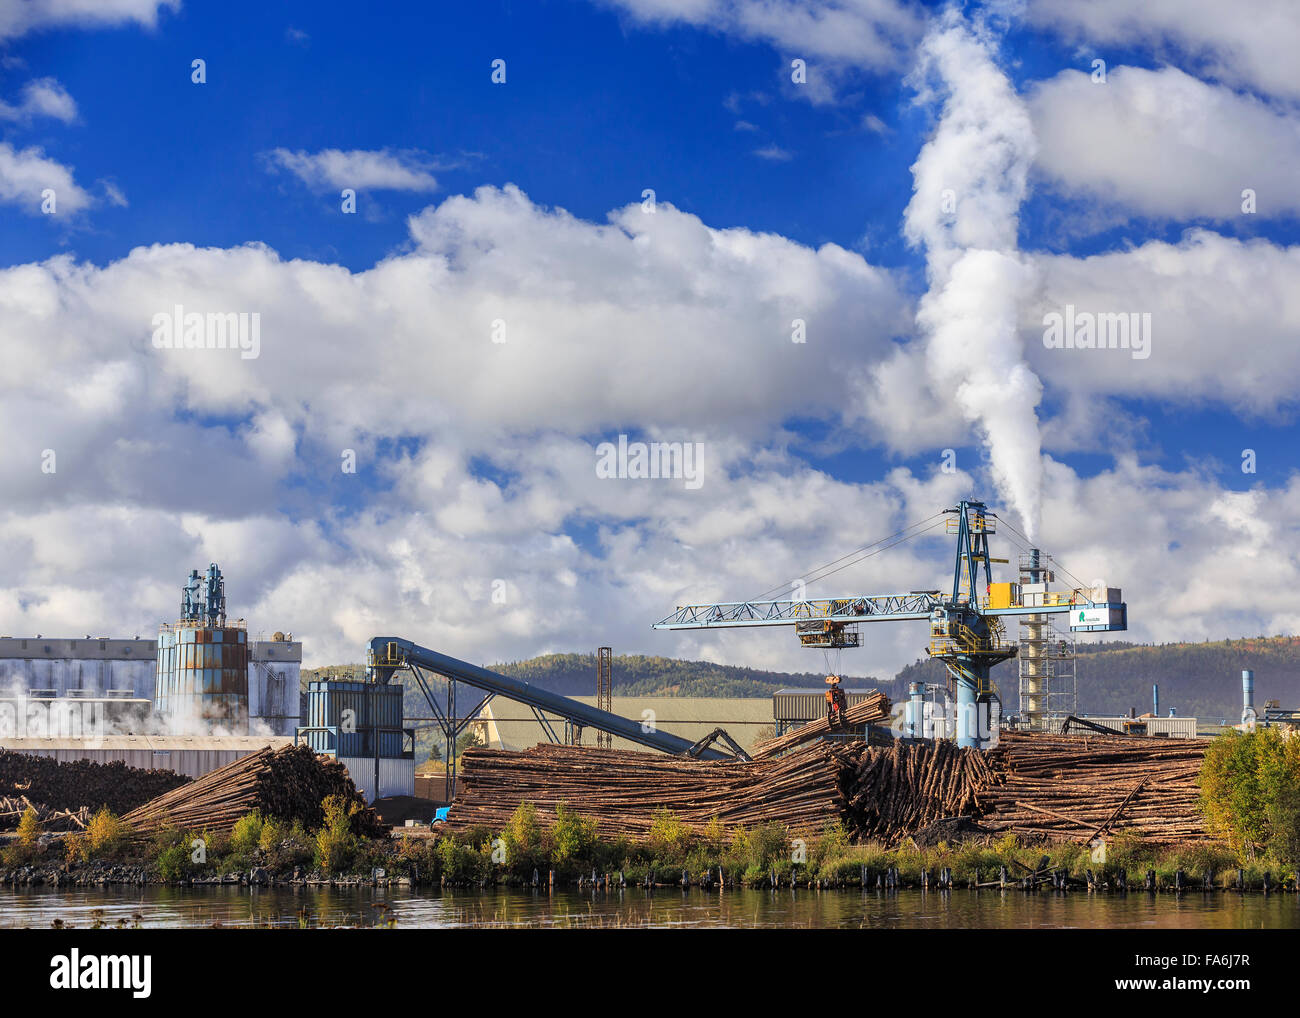 Paper Mill Stock Photos & Paper Mill Stock Images - Alamy